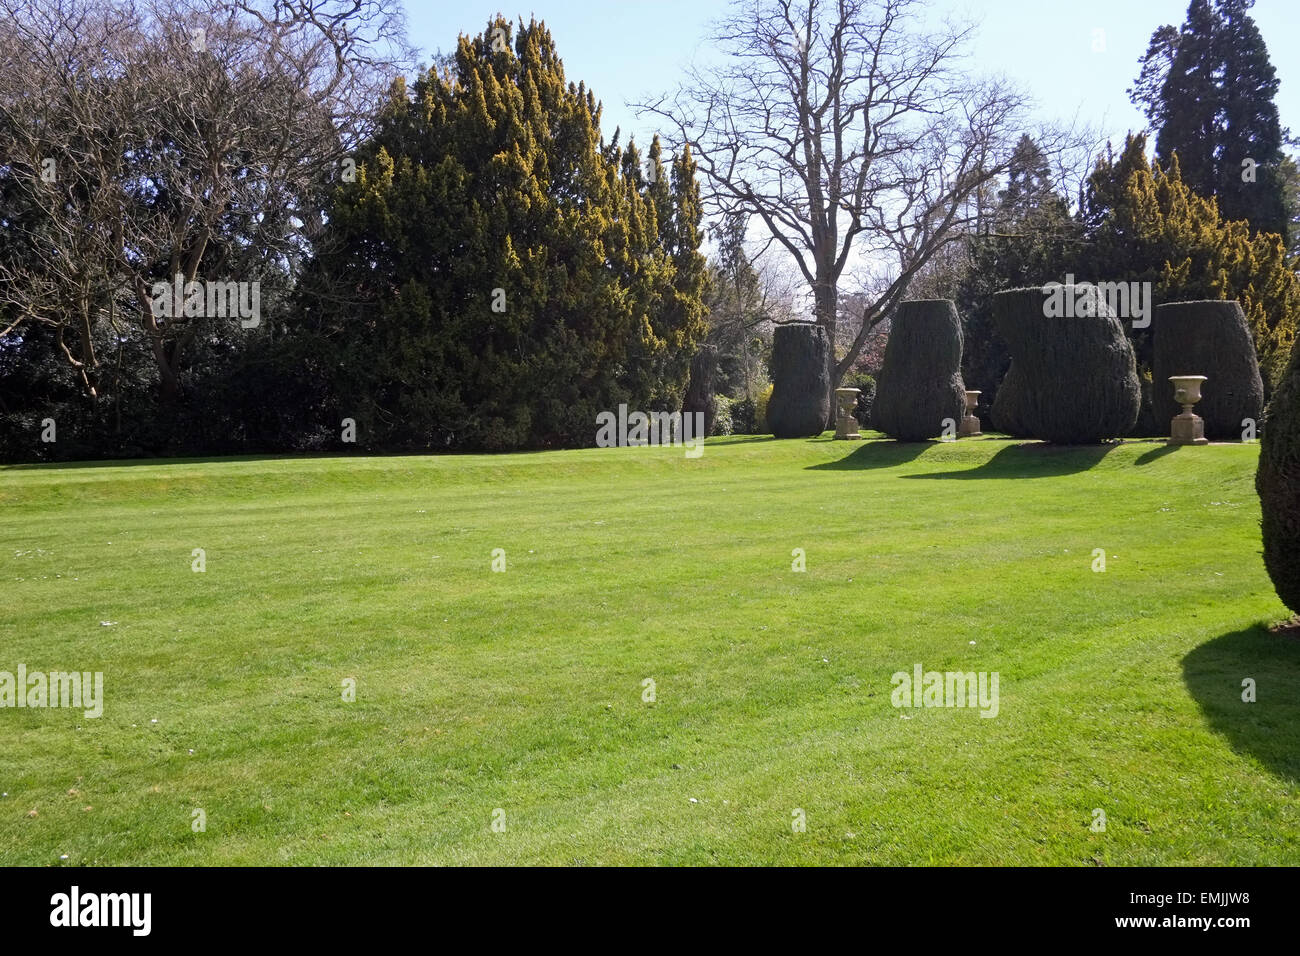 Lawn and Gardens at Castle Ashby House in Northamptonshire UK - Stock Image